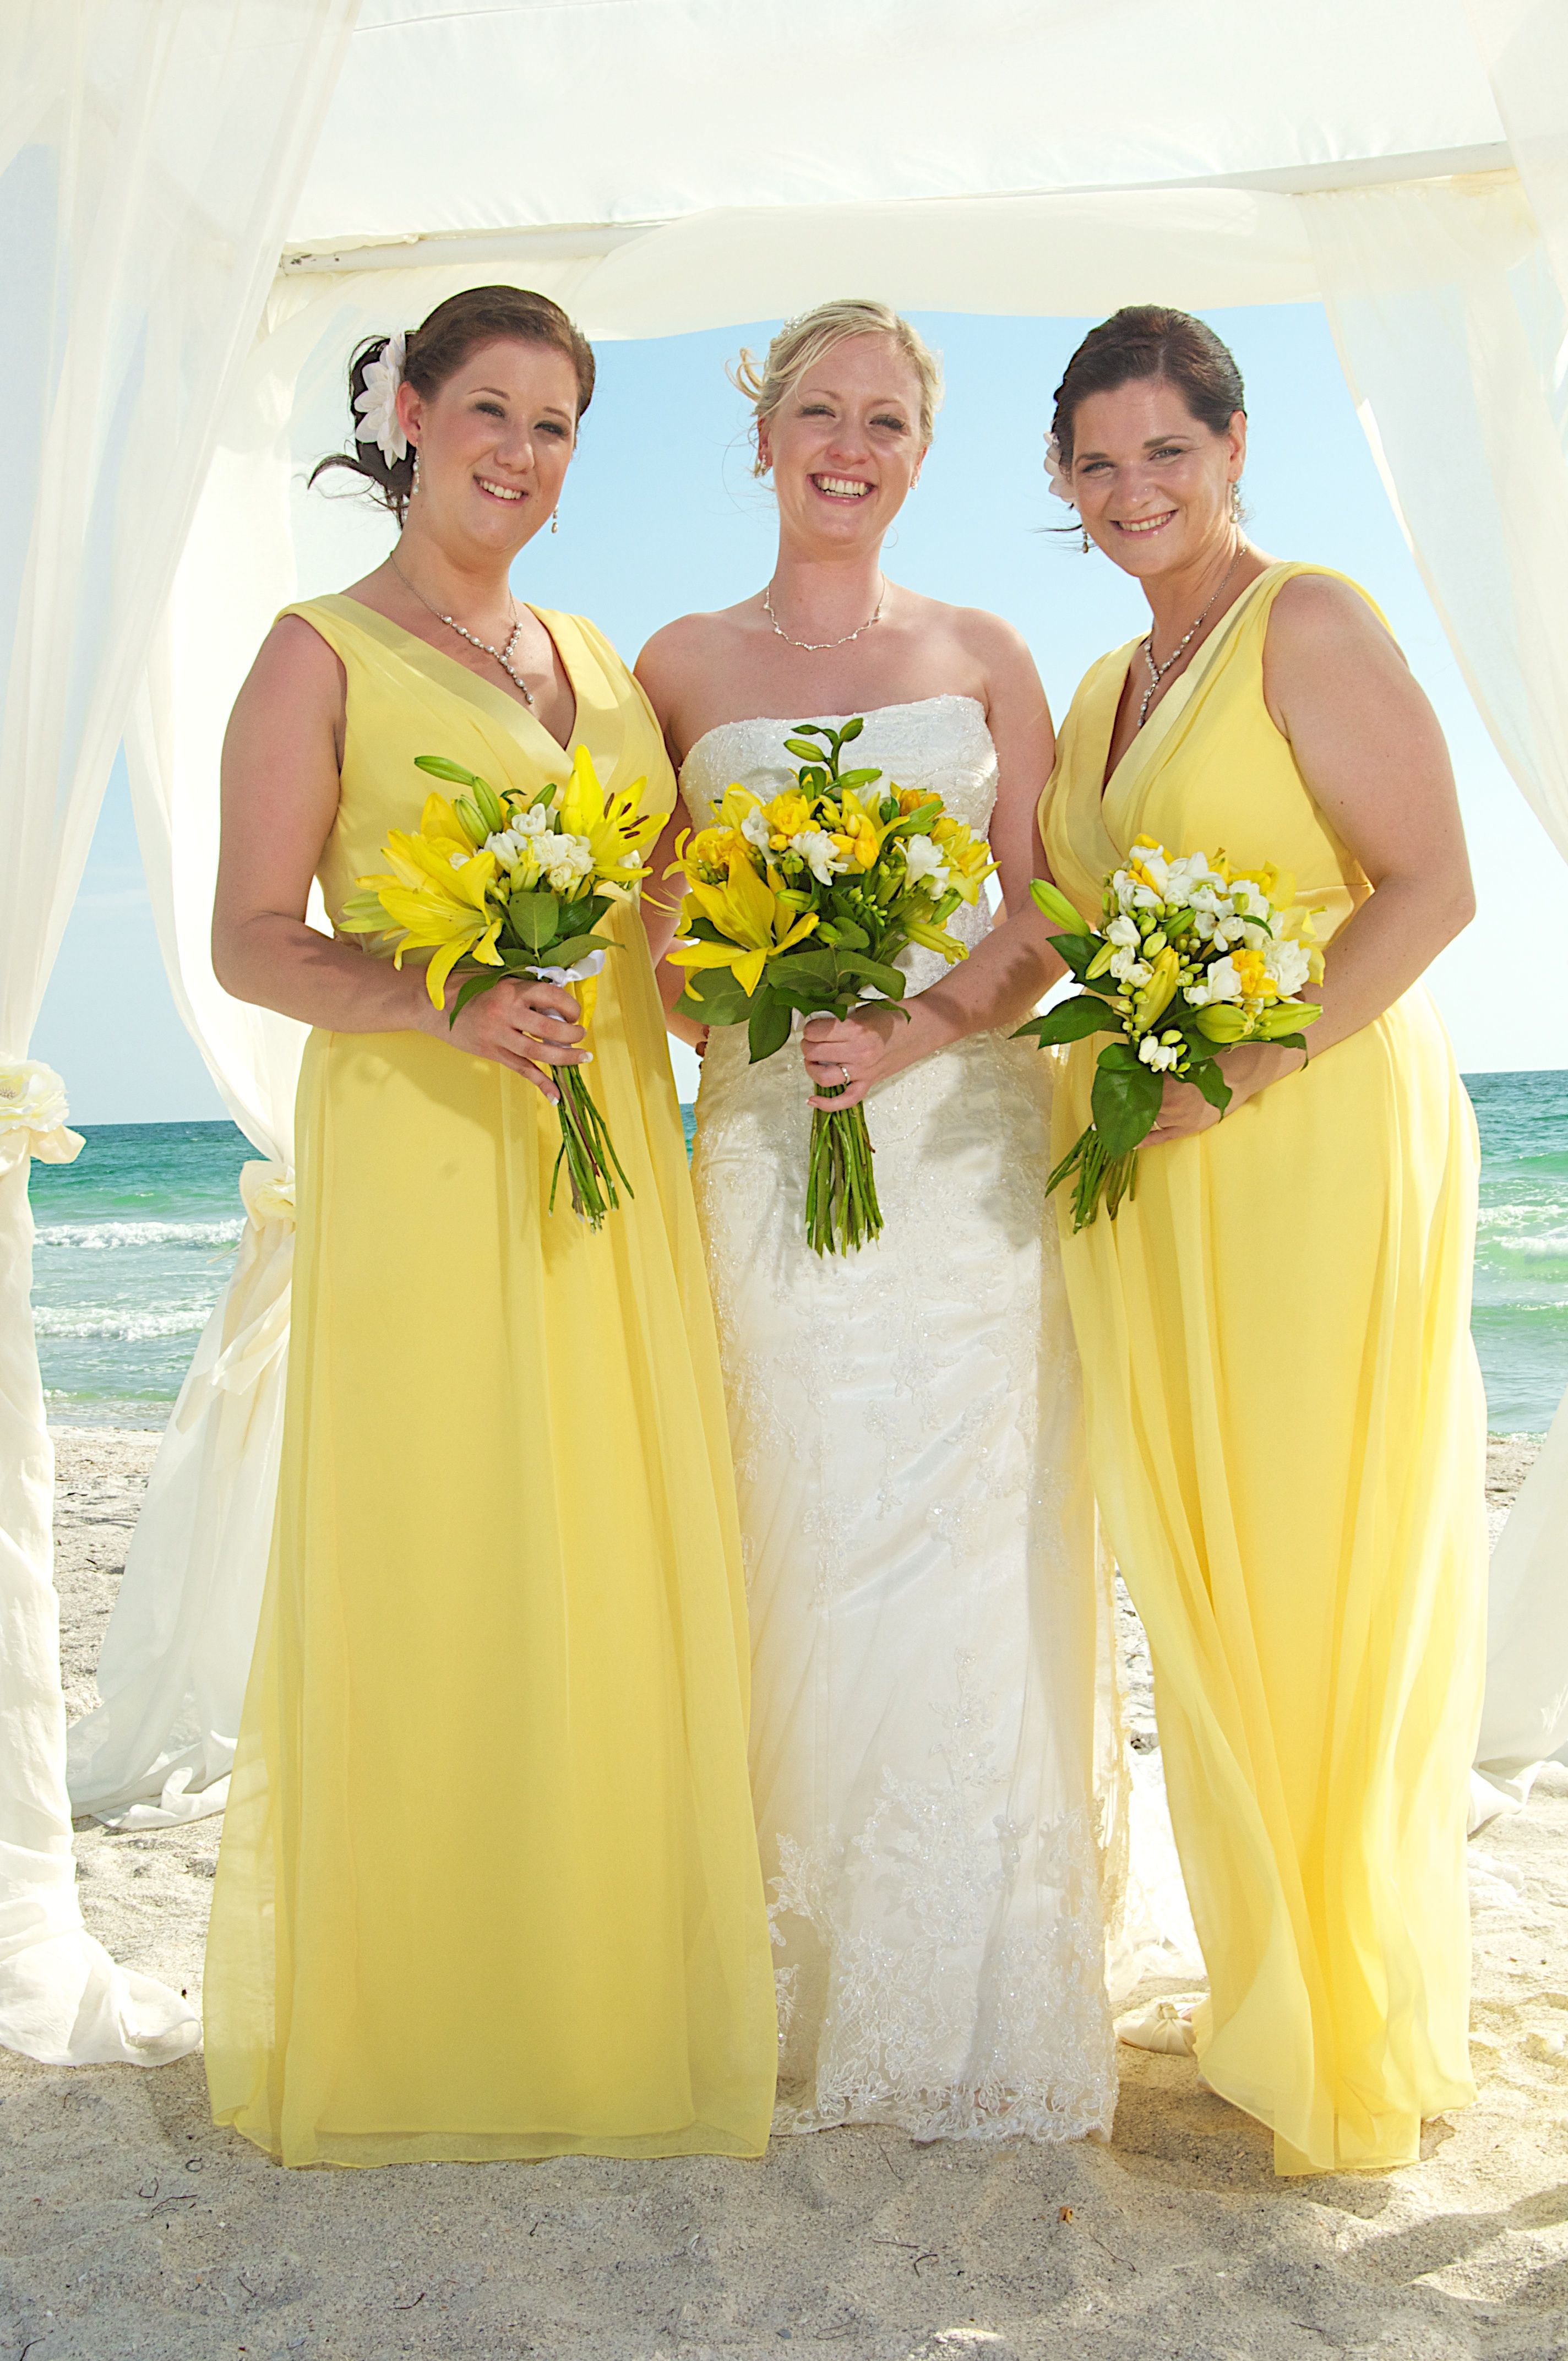 Lemon Bridesmaids Dresses Yellow Beach Wedding Yellow Wedding Dress Beach Wedding Yellow Beach Bridesmaid Dresses